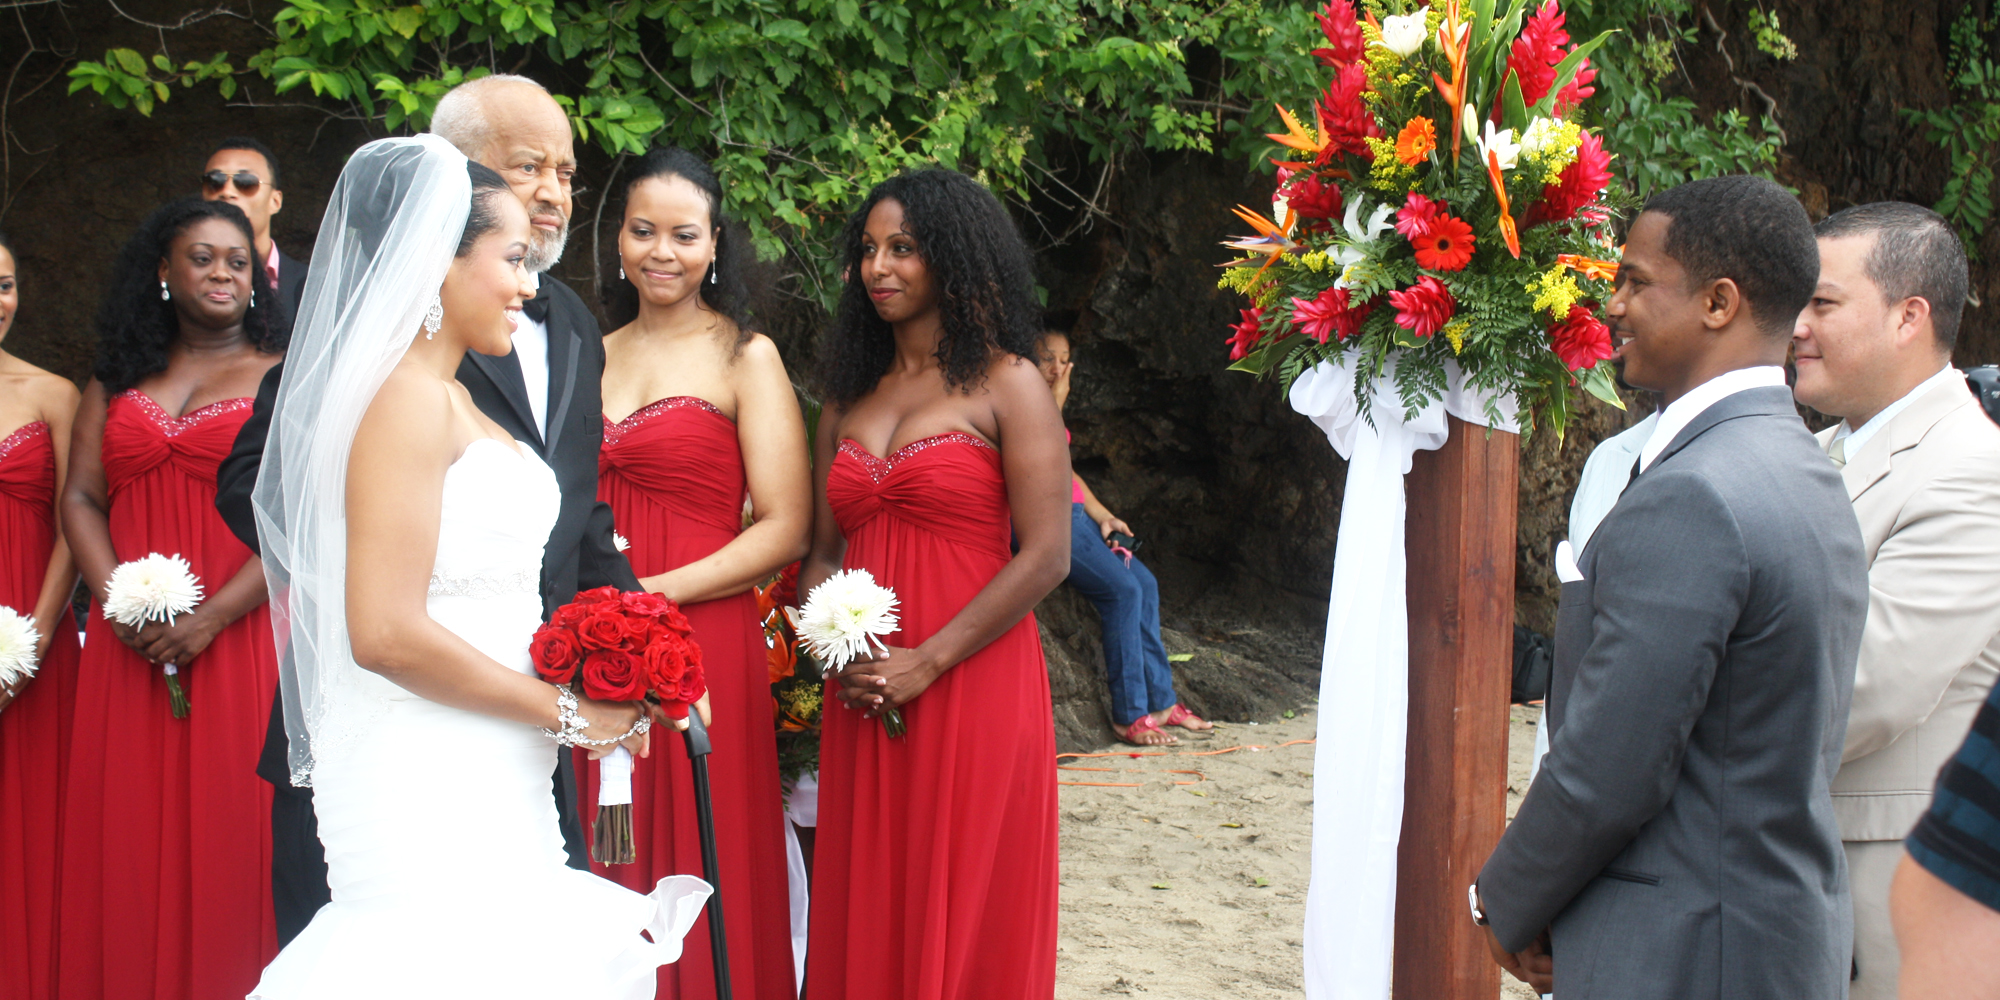 ohpsalms-wedding-costa-rica-3